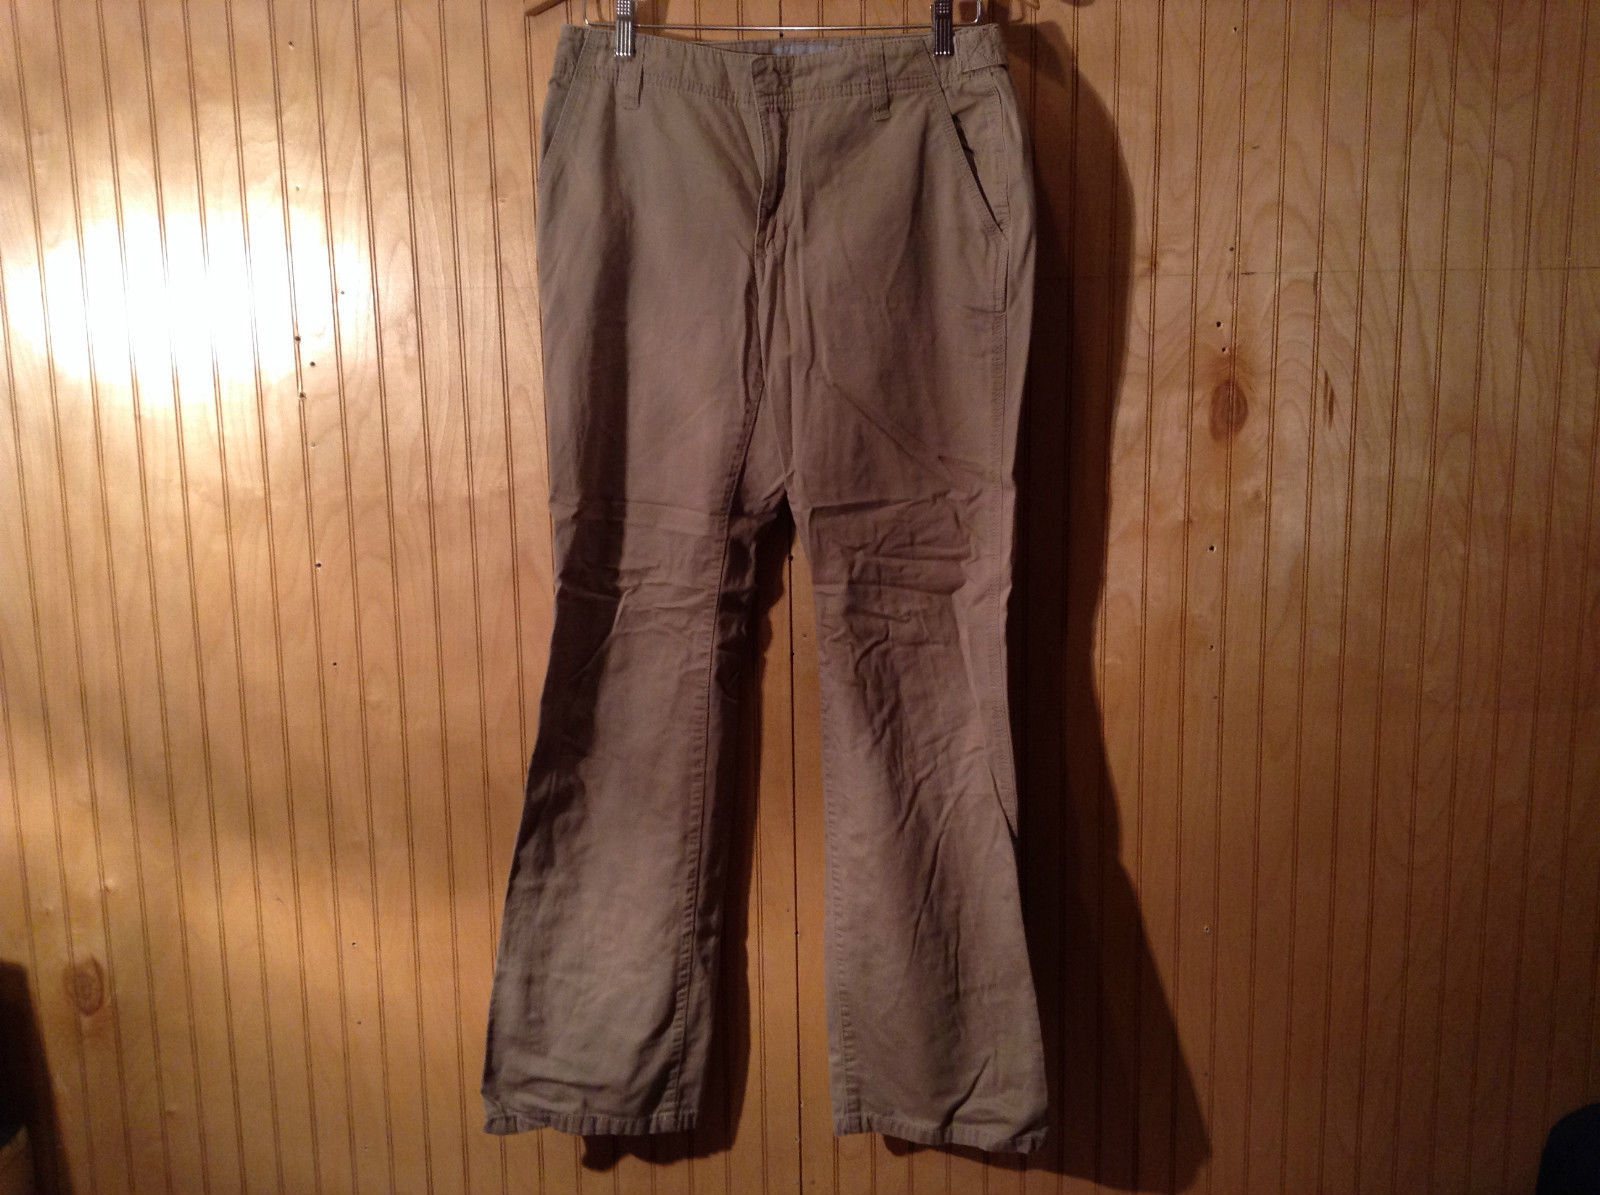 Brown Casual Pants by Liz Claiborne Front Back Pockets Good Condition Size 6